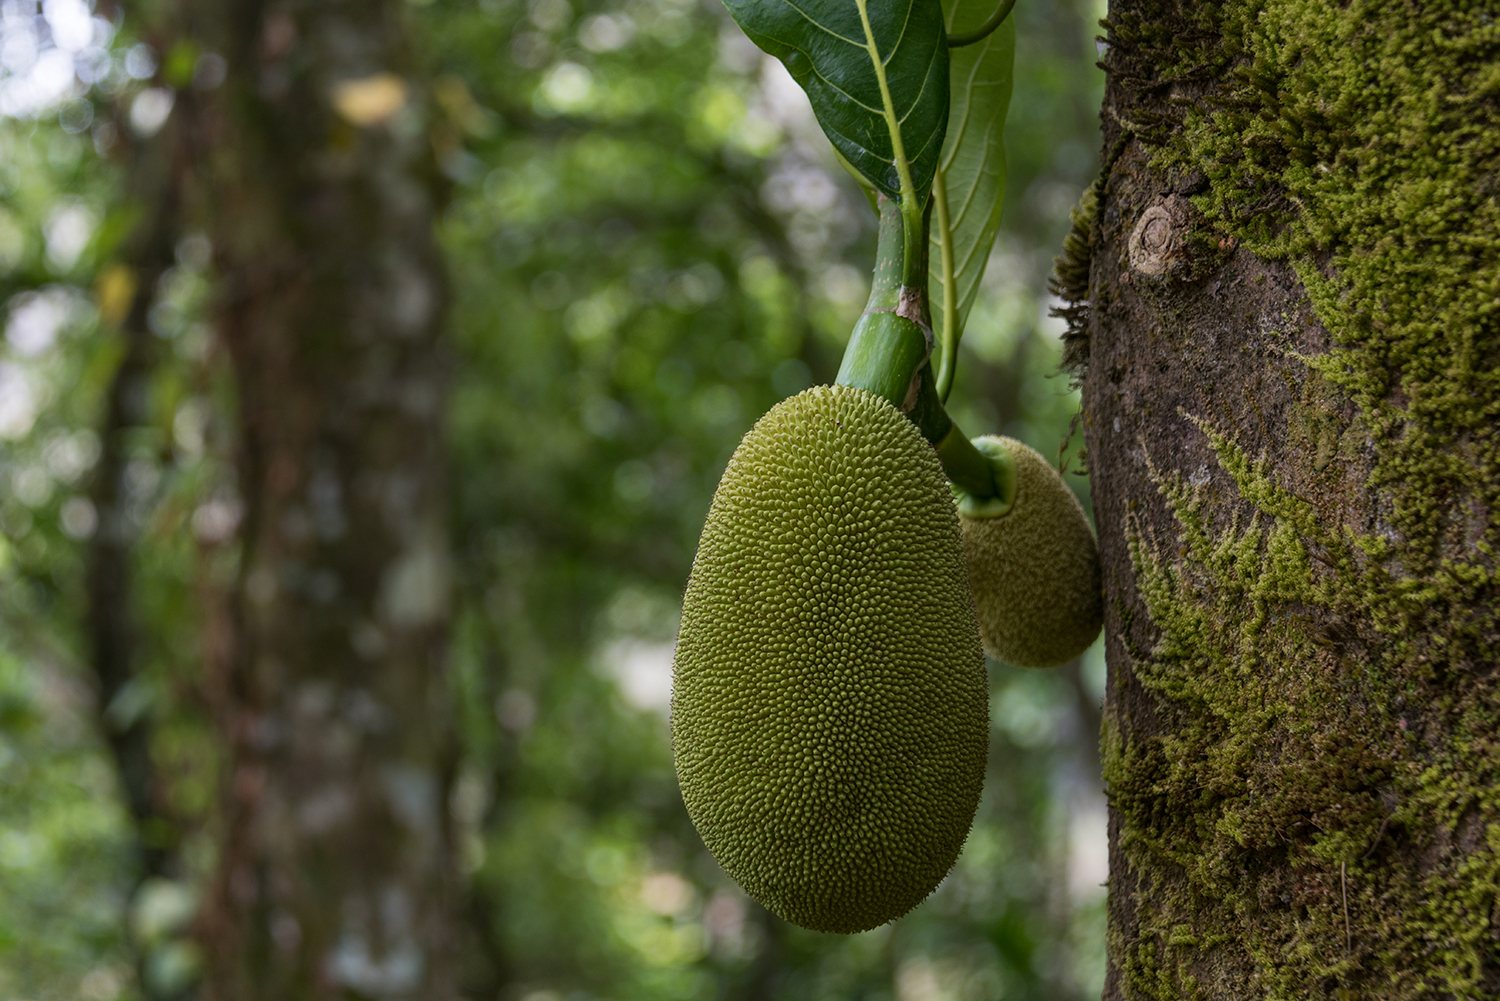 Jackfruit in the Wild